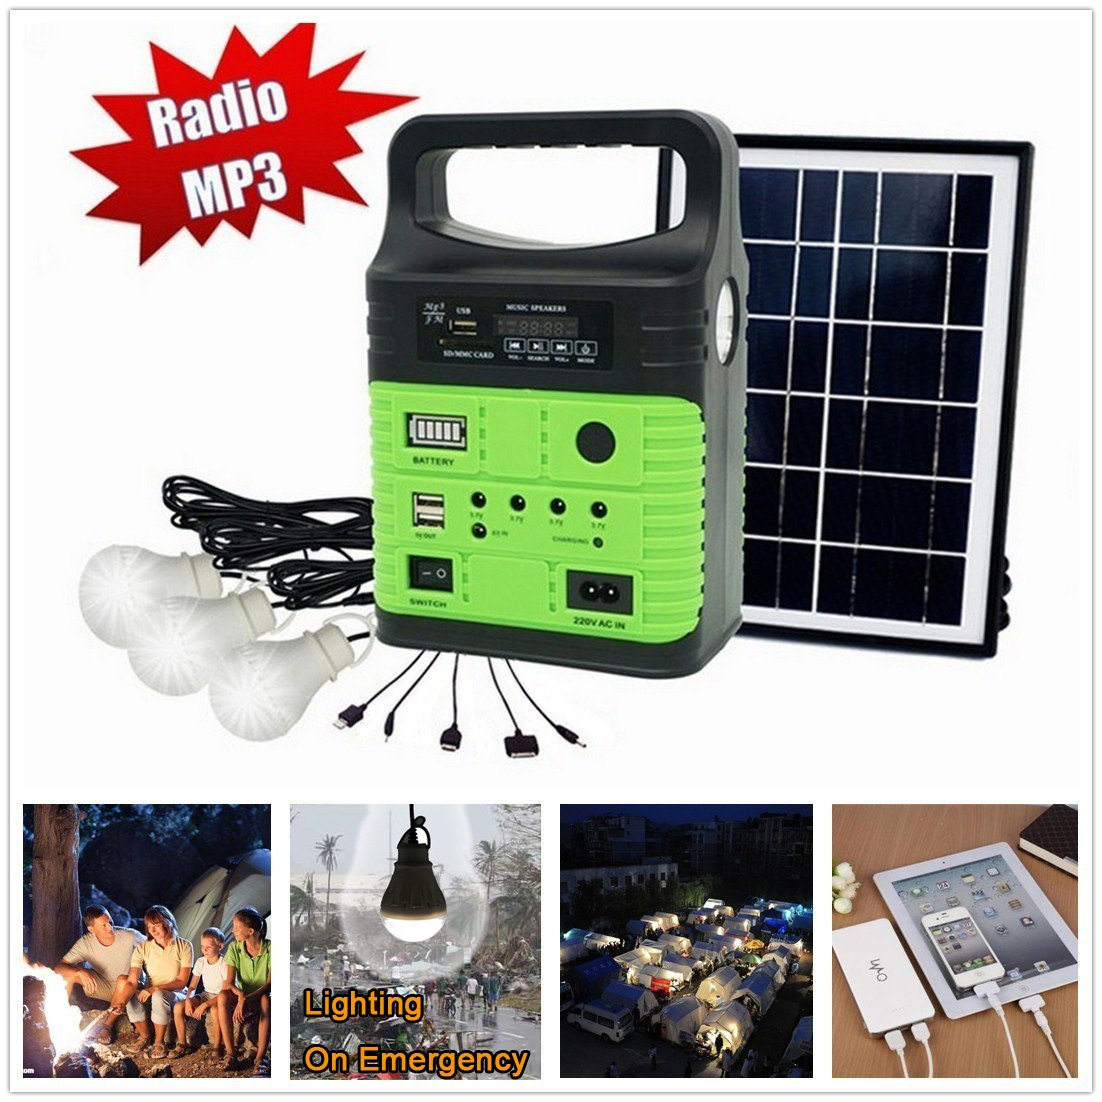 10-Watt Solar Generator Portable kit,Power Inverter,Solar Generator System for Home & Camping,9000mAh Rechargeable Battery Pack UPS Power Supply, Included 6 Watt Solar Panels by Wegner